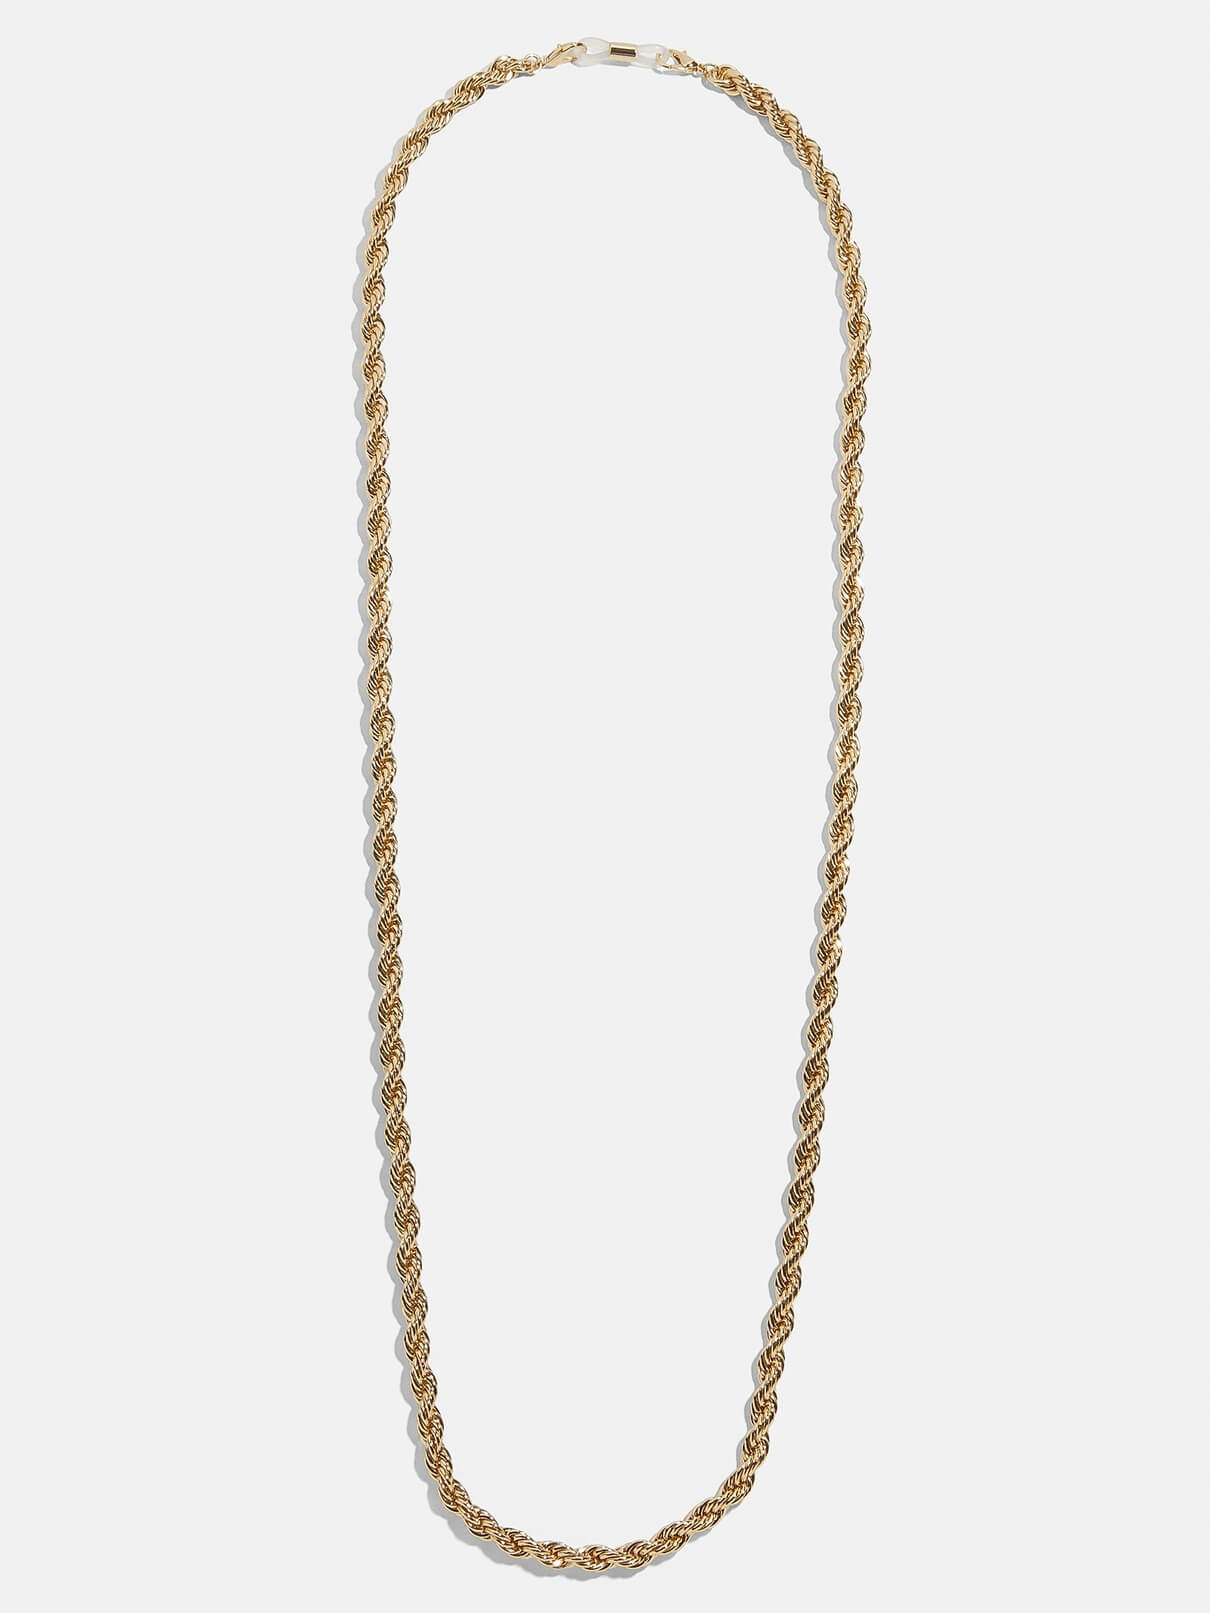 a gold mask chain on a white background